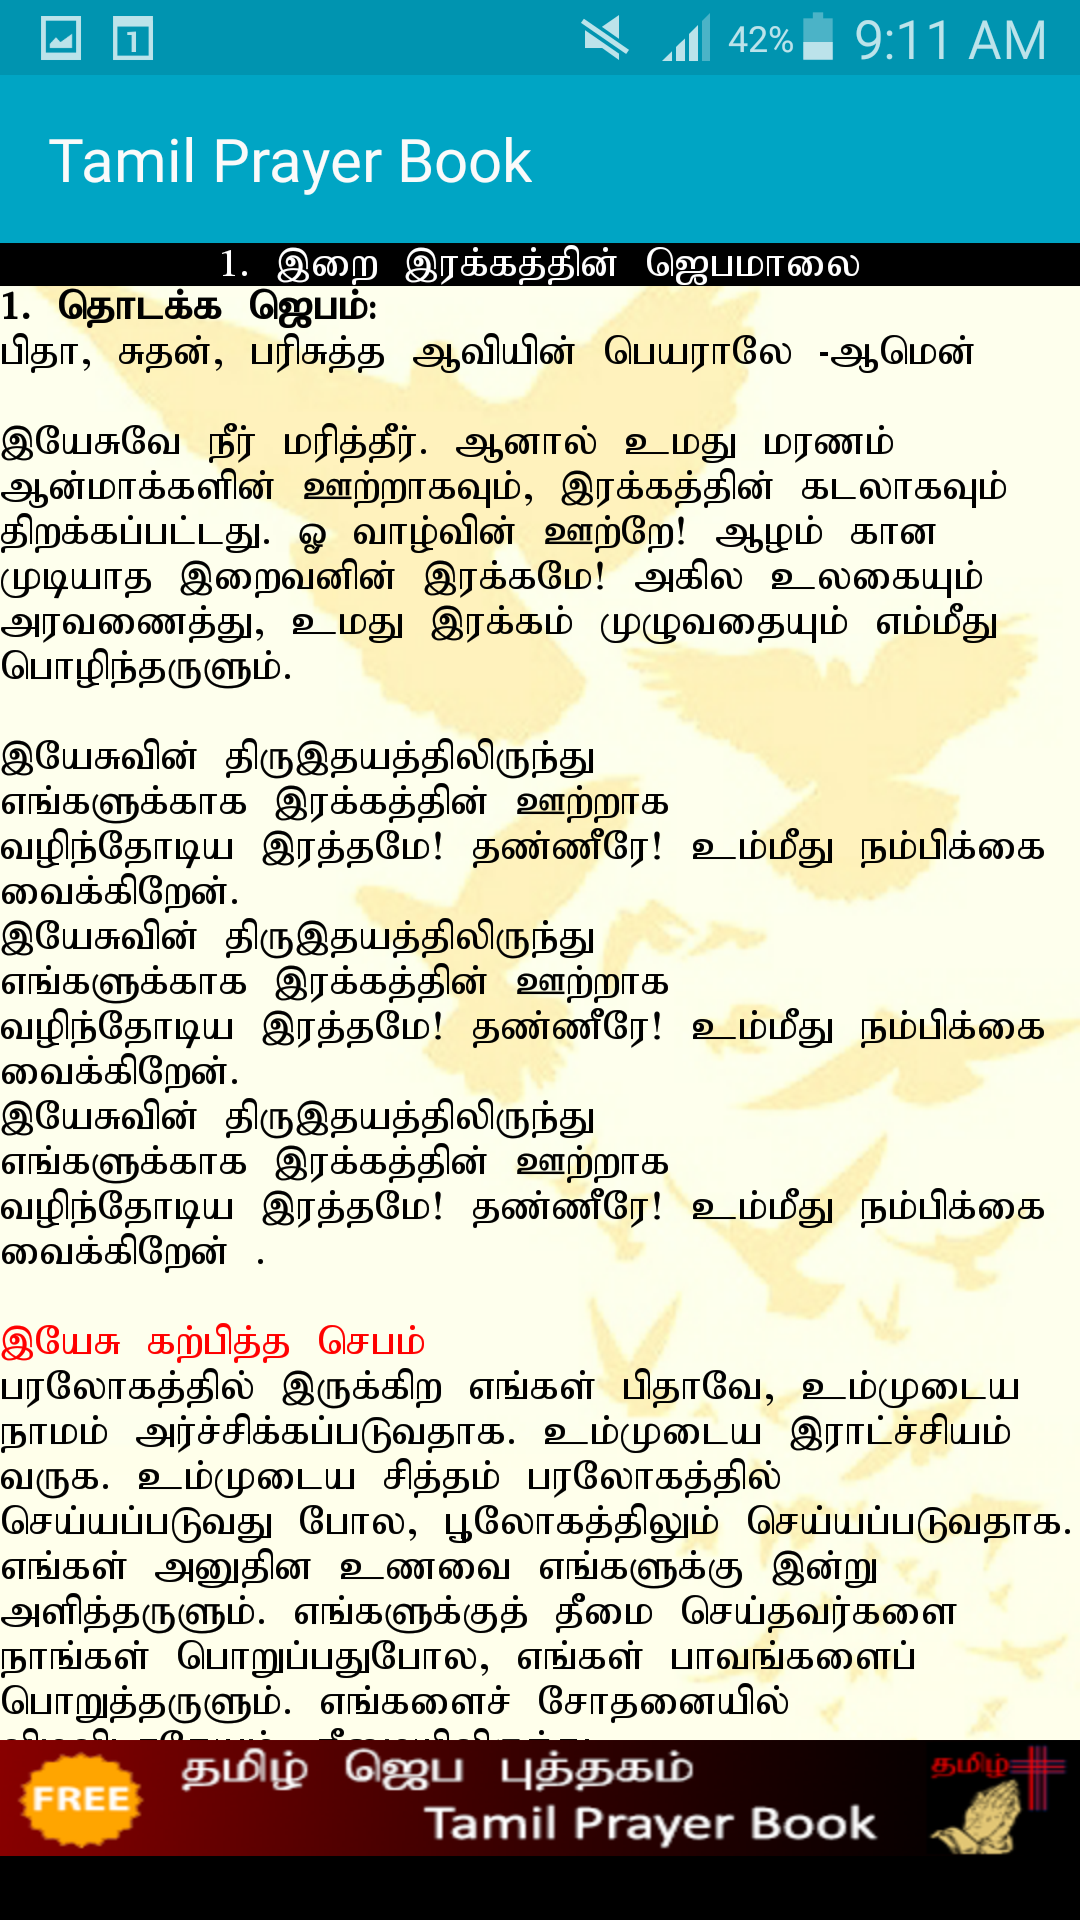 Amazon com: Tamil Catholic Prayer Book: Appstore for Android